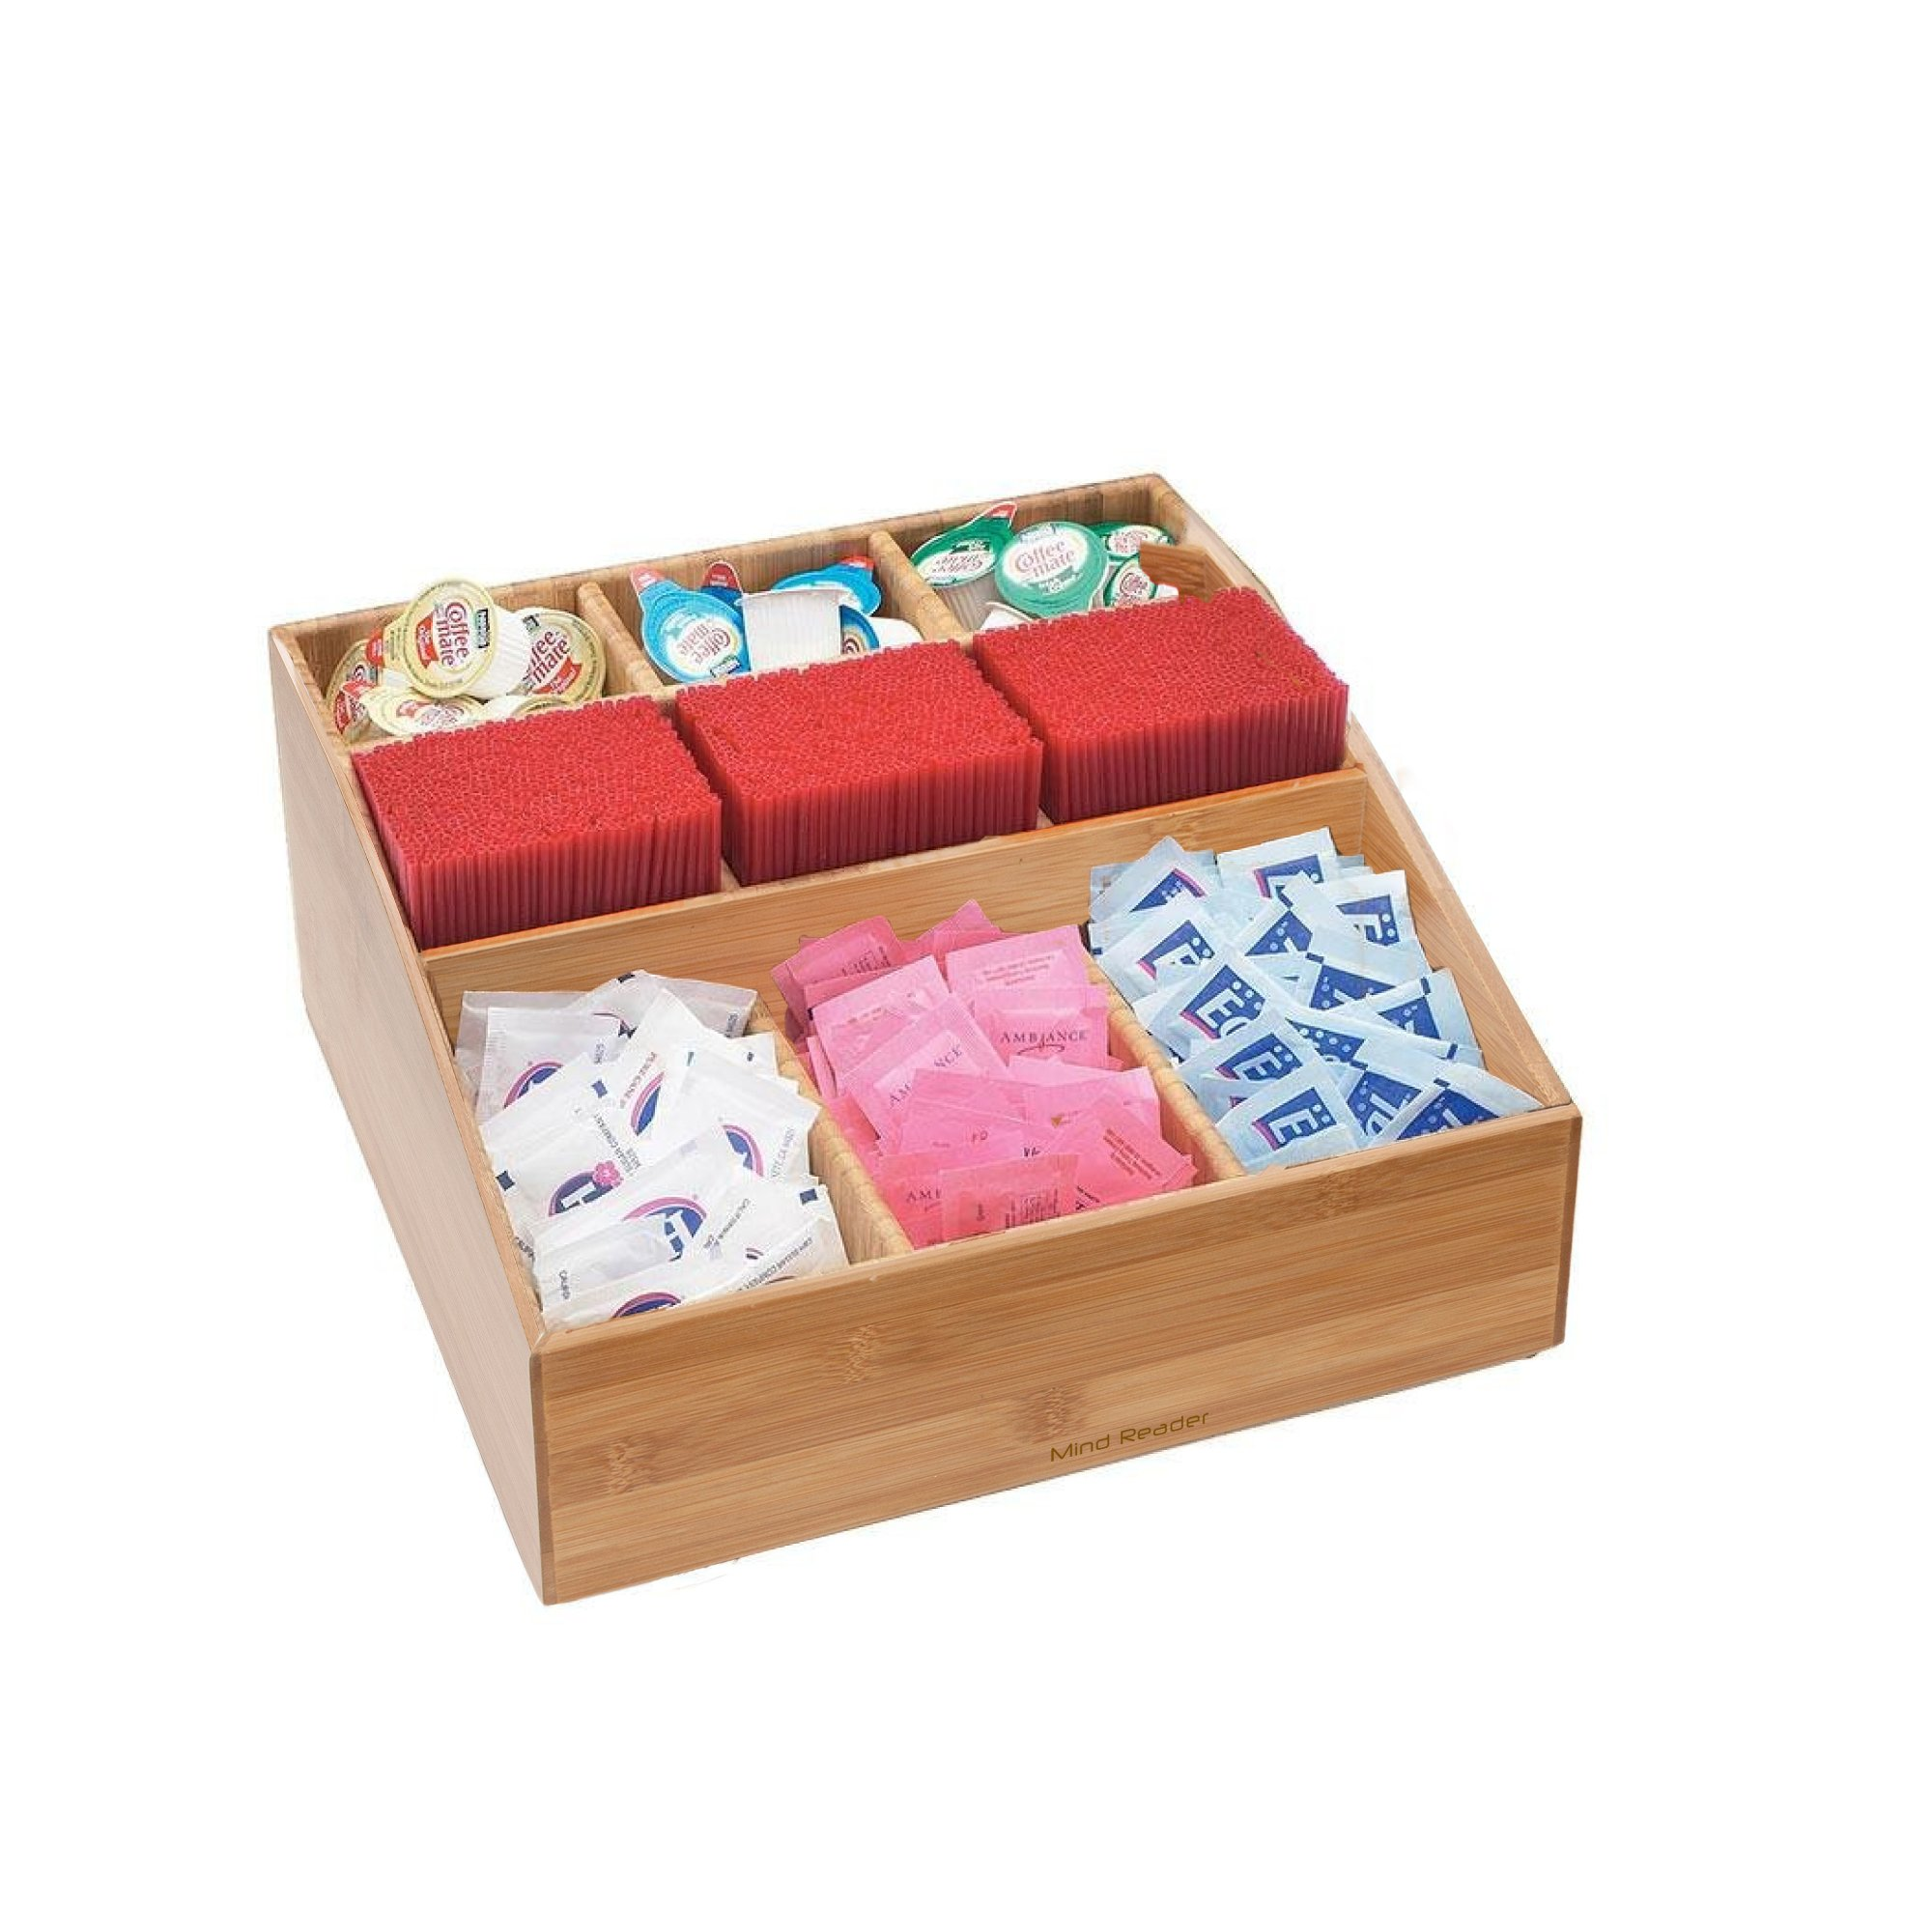 Mind Reader Coffee Condiment and Accessories Caddy Organizer with 9 Organizing Compartments, Bamboo Brown by Mind Reader (Image #2)